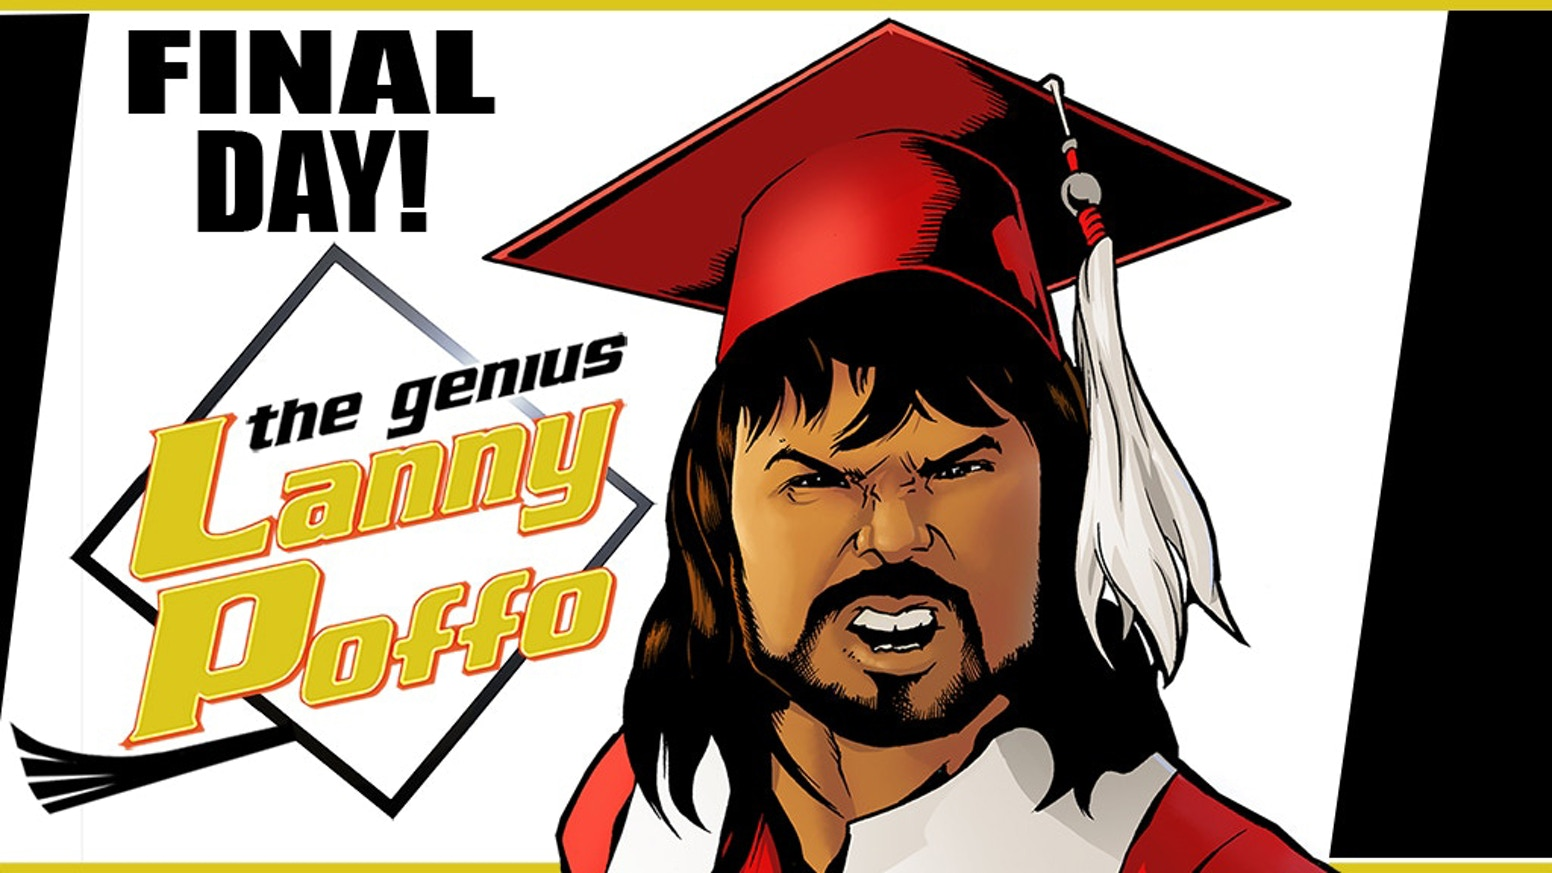 The comic biography of Leaping Lanny Poffo, brother of Macho Man Randy Savage and a wrestling legend in his own right!